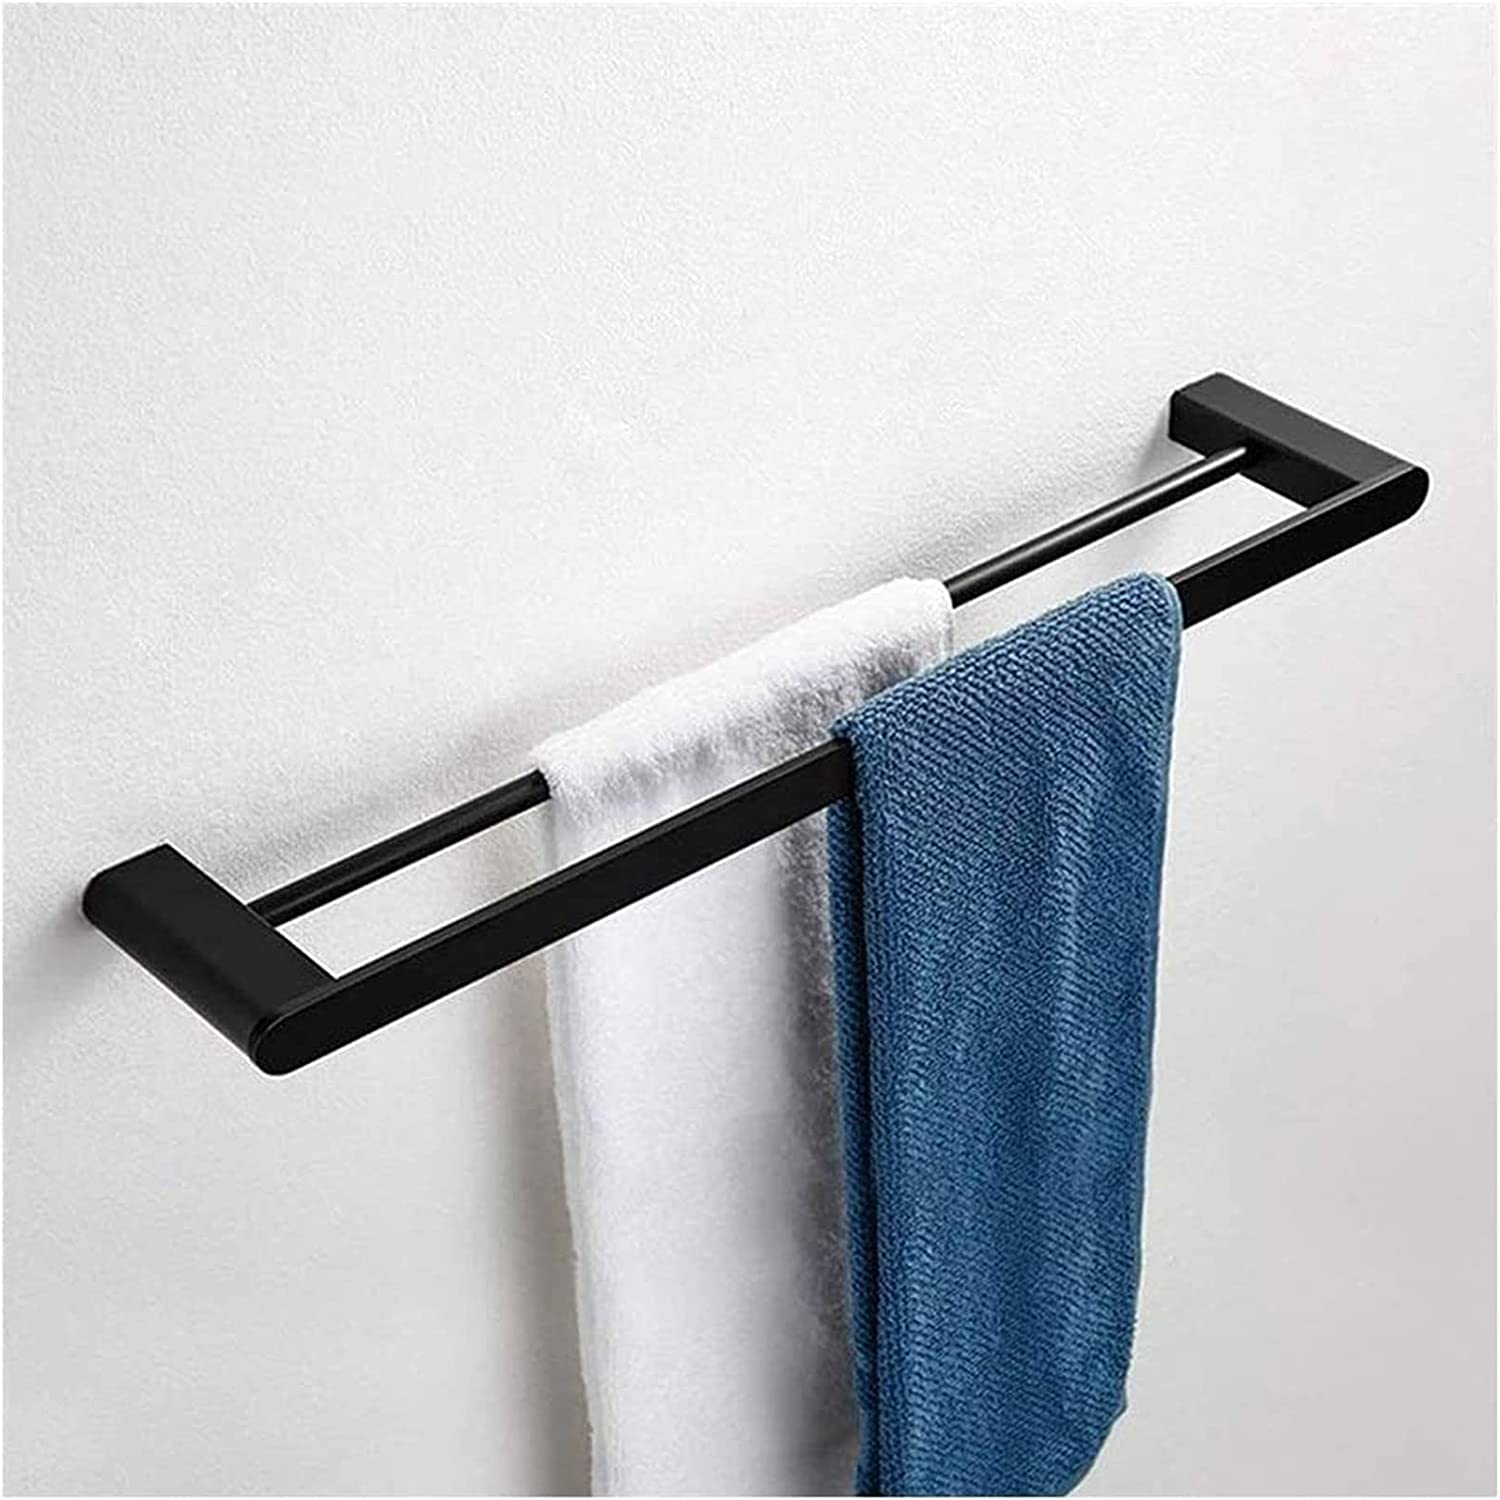 Towel Year-end gift rack Racks For Sales of SALE items from new works R Bar Bathroom